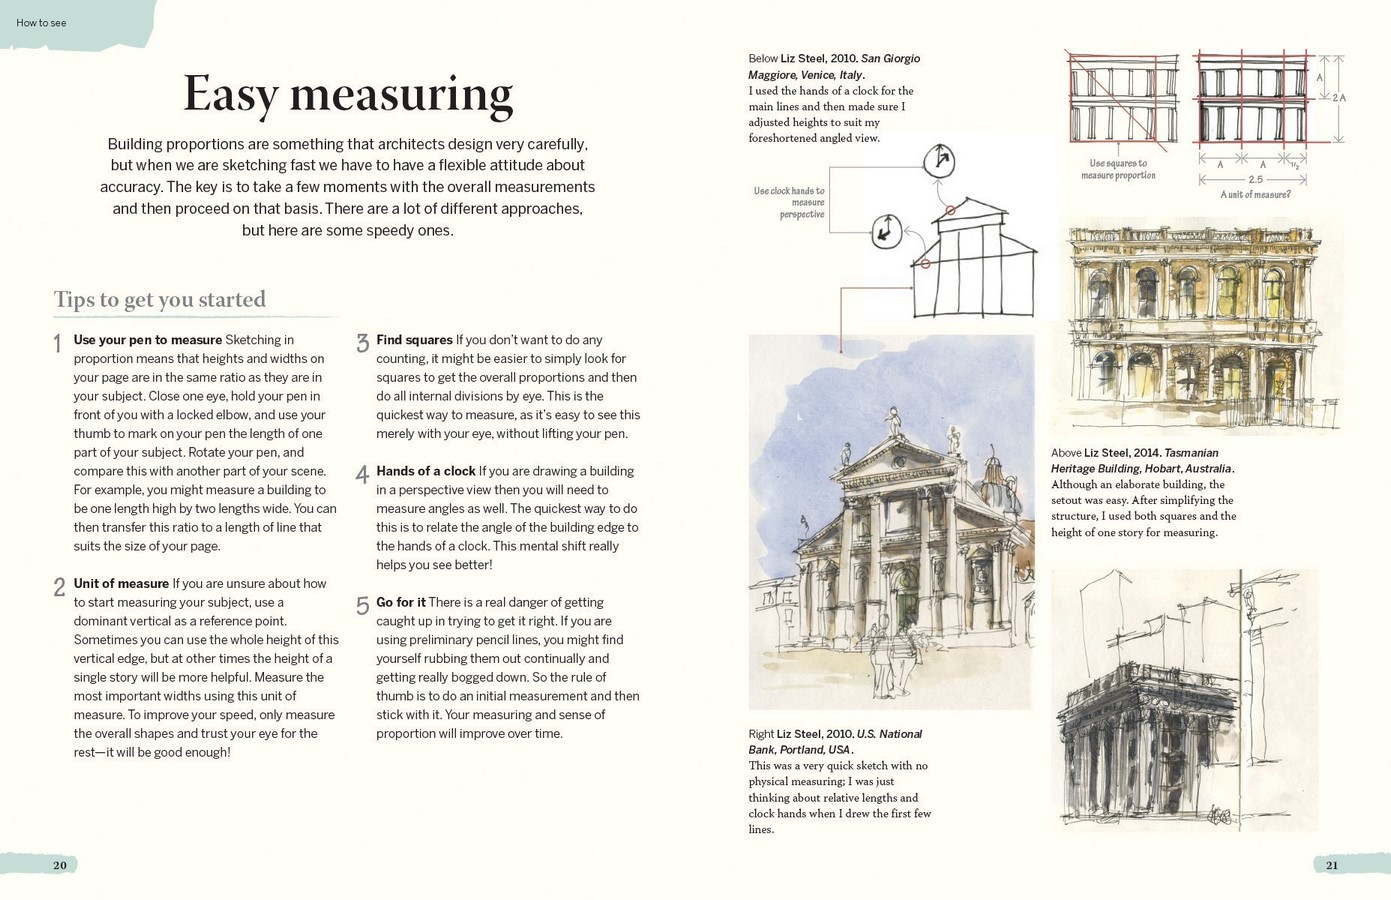 10 Books related to Architectural Sketching everyone should read - Sheet3